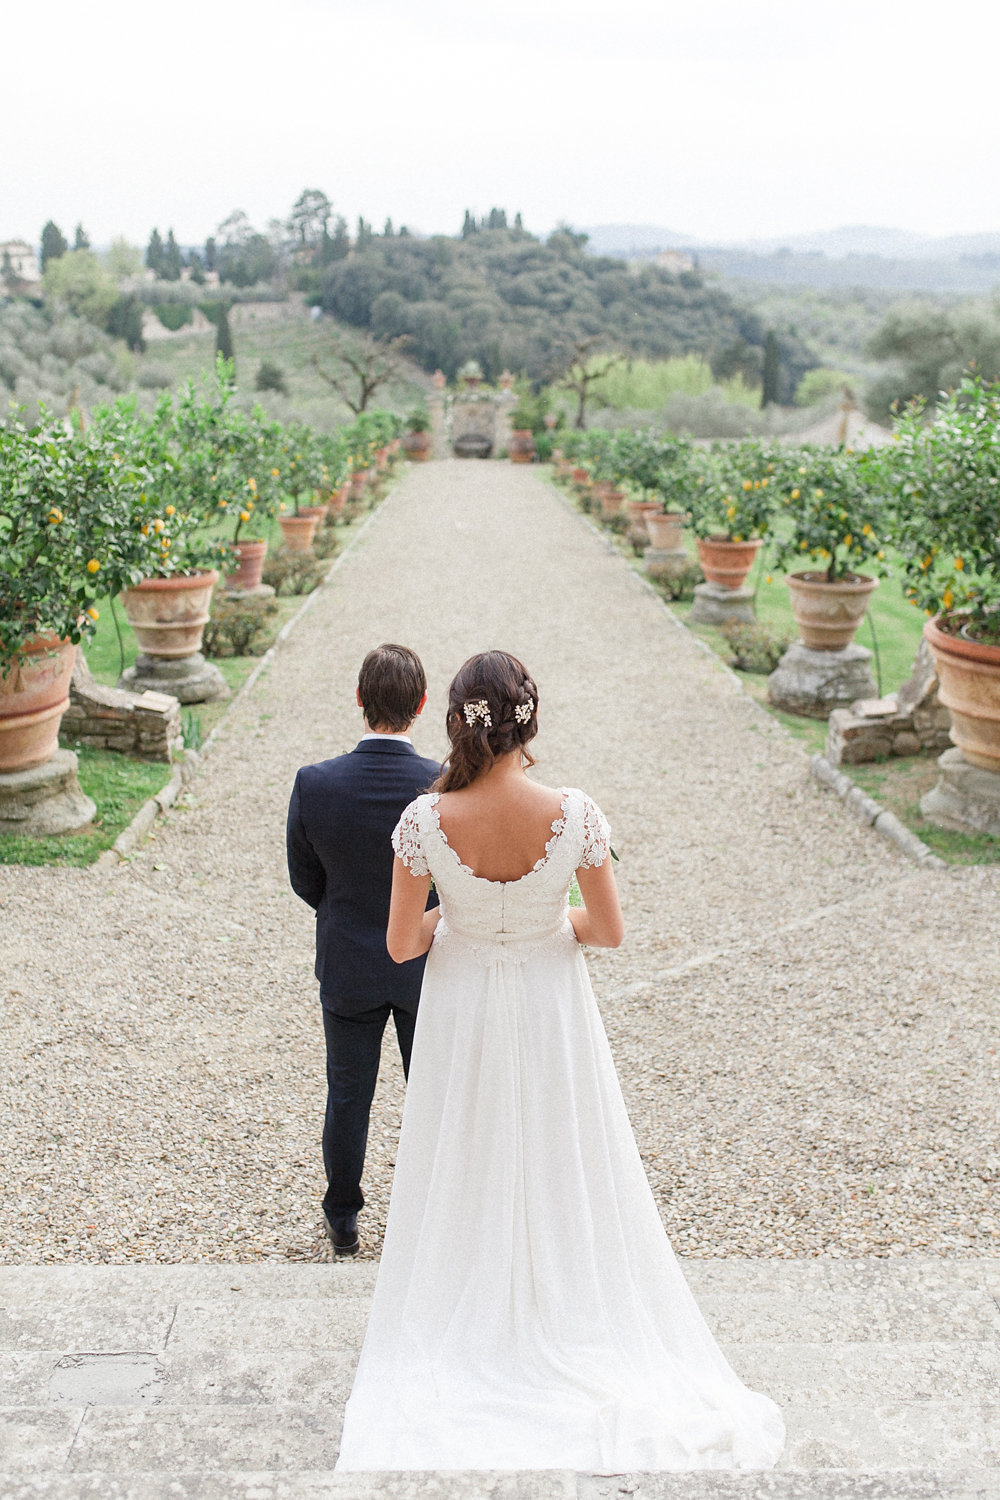 Tuscany Wedding Photographer Roberta Facchini 102